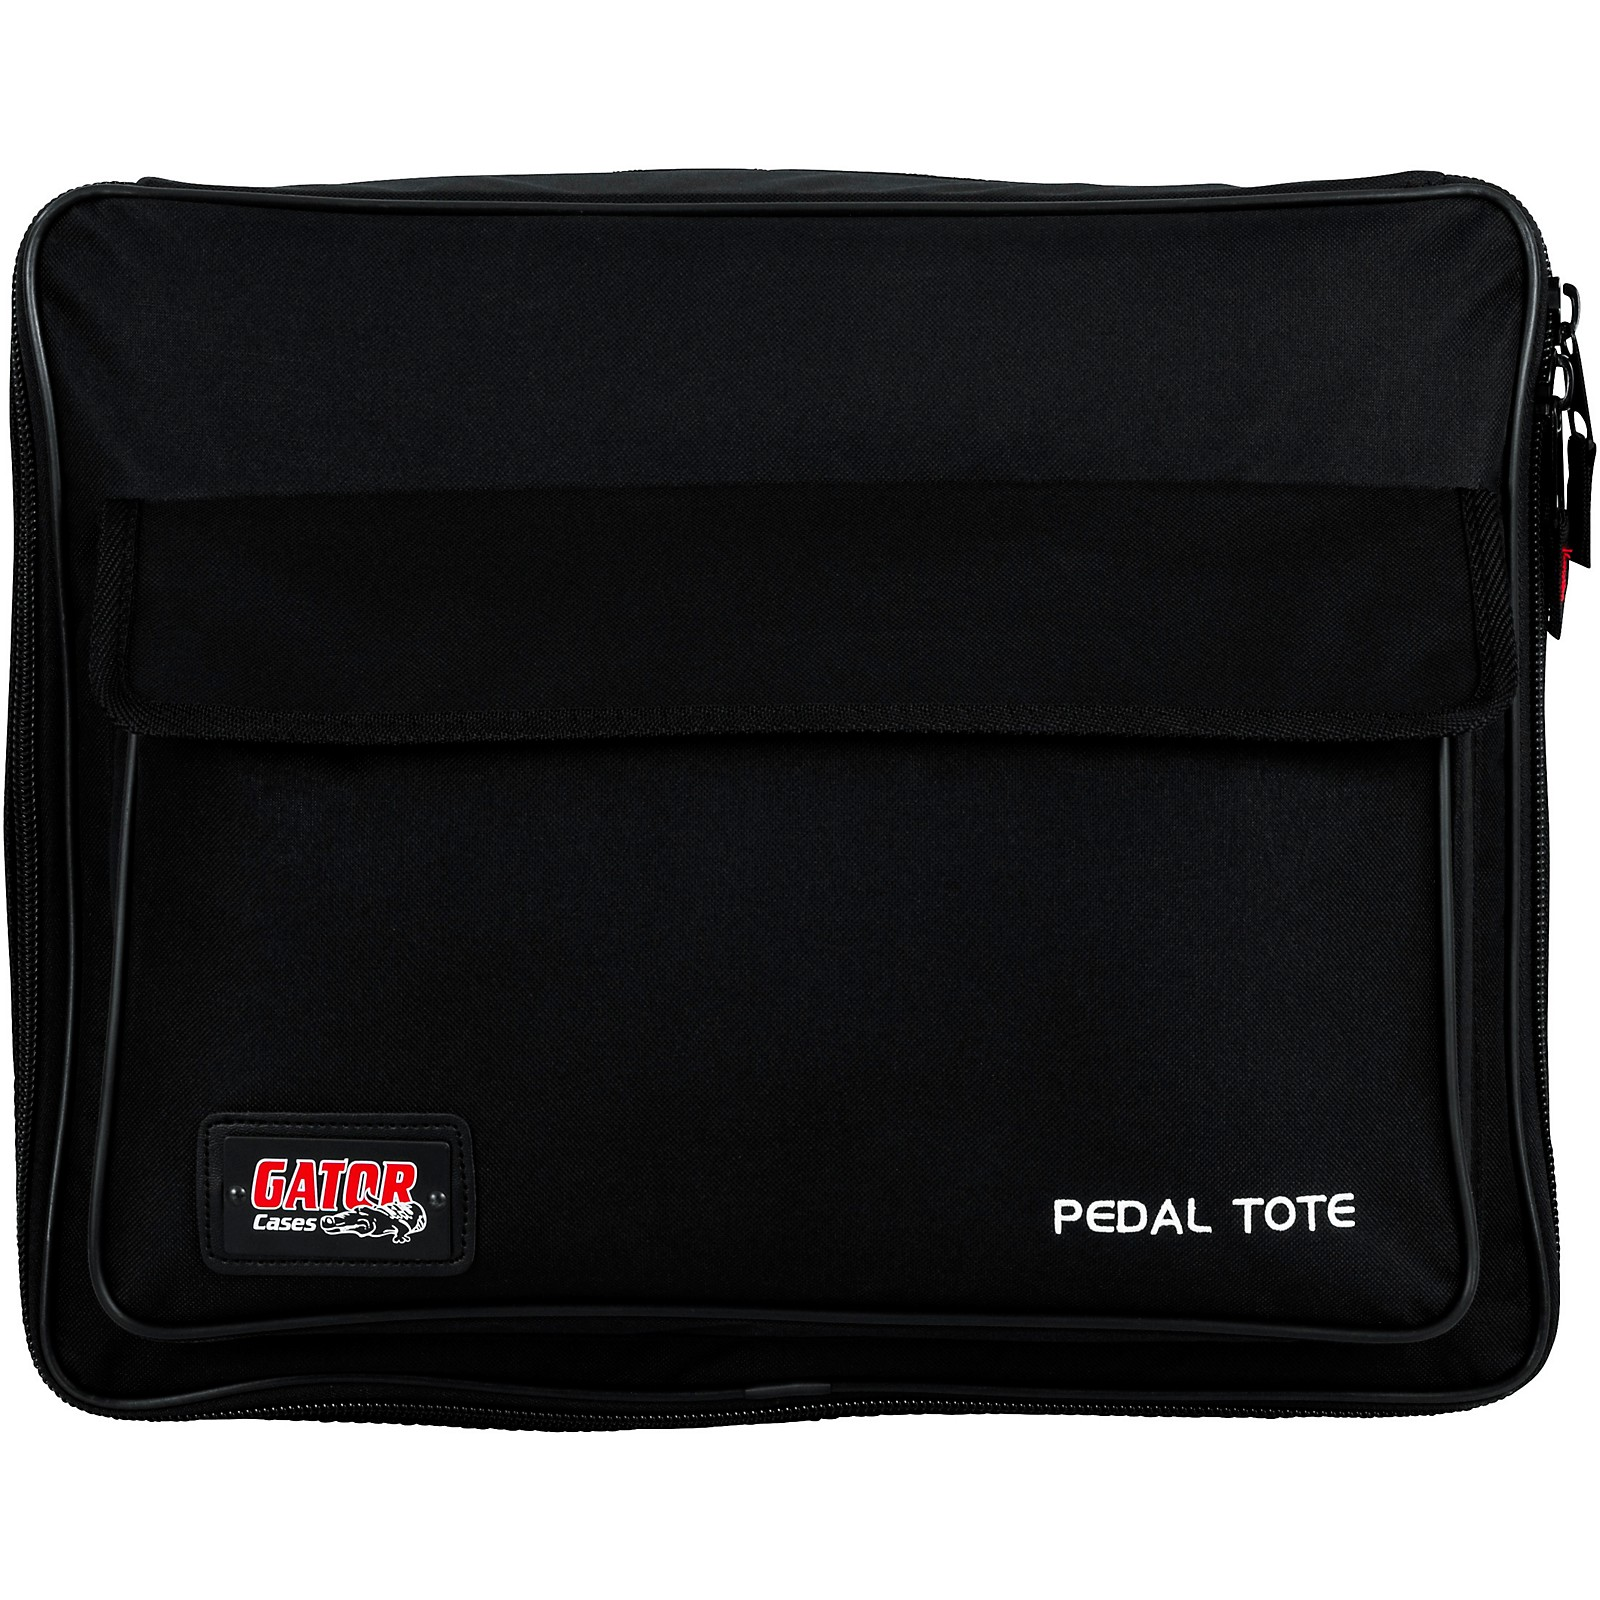 Gator GPT Pedal Tote Pedal Board with Carry Bag